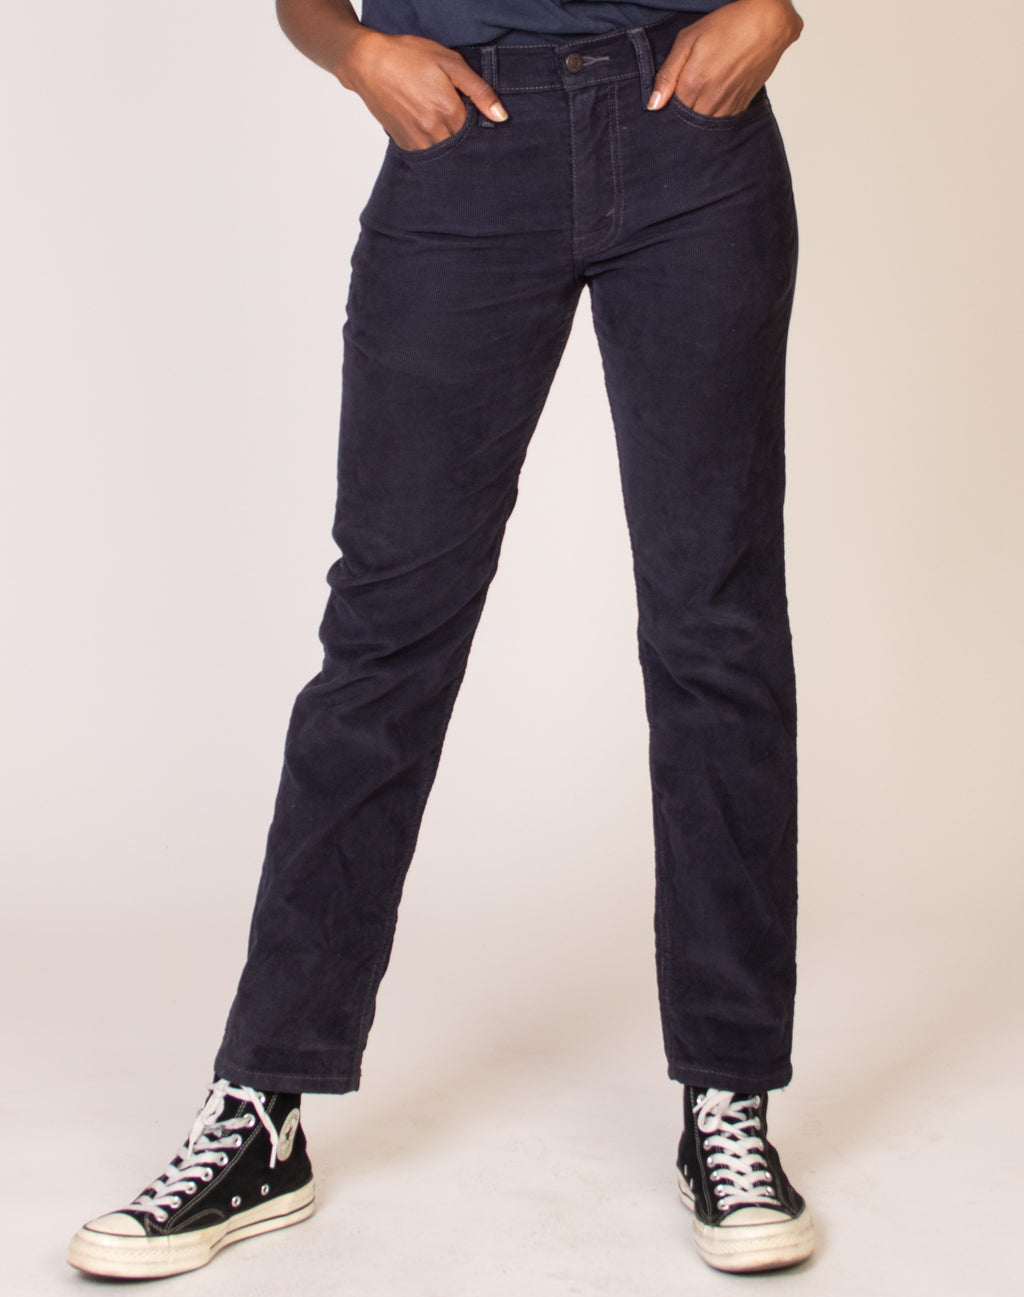 LEVI NAVY MID-RISE CORD JEANS